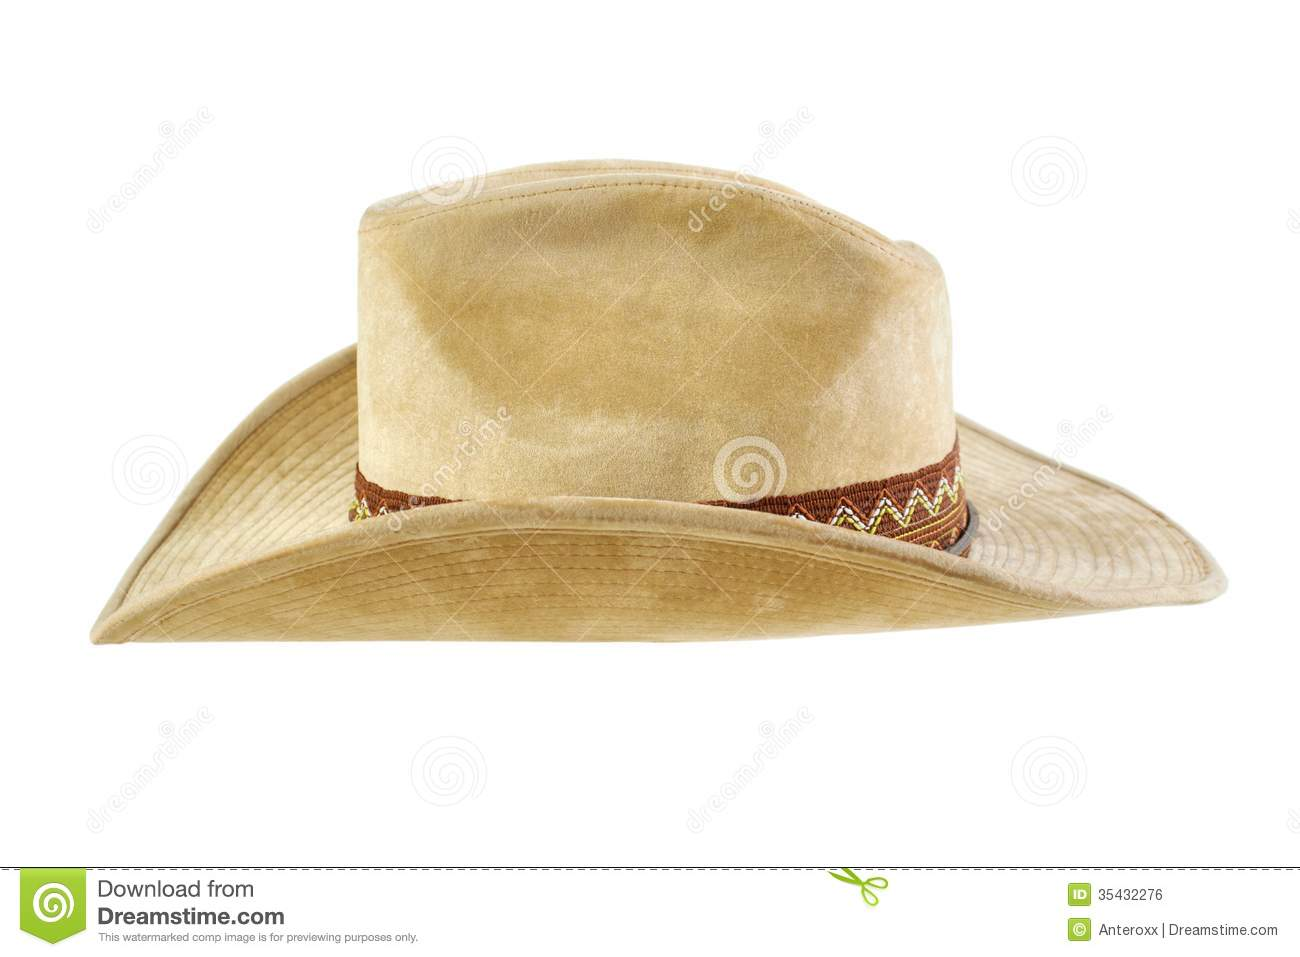 38dbba0cd35 Side View Cowboy Hat Stock Images - Download 138 Royalty Free Photos